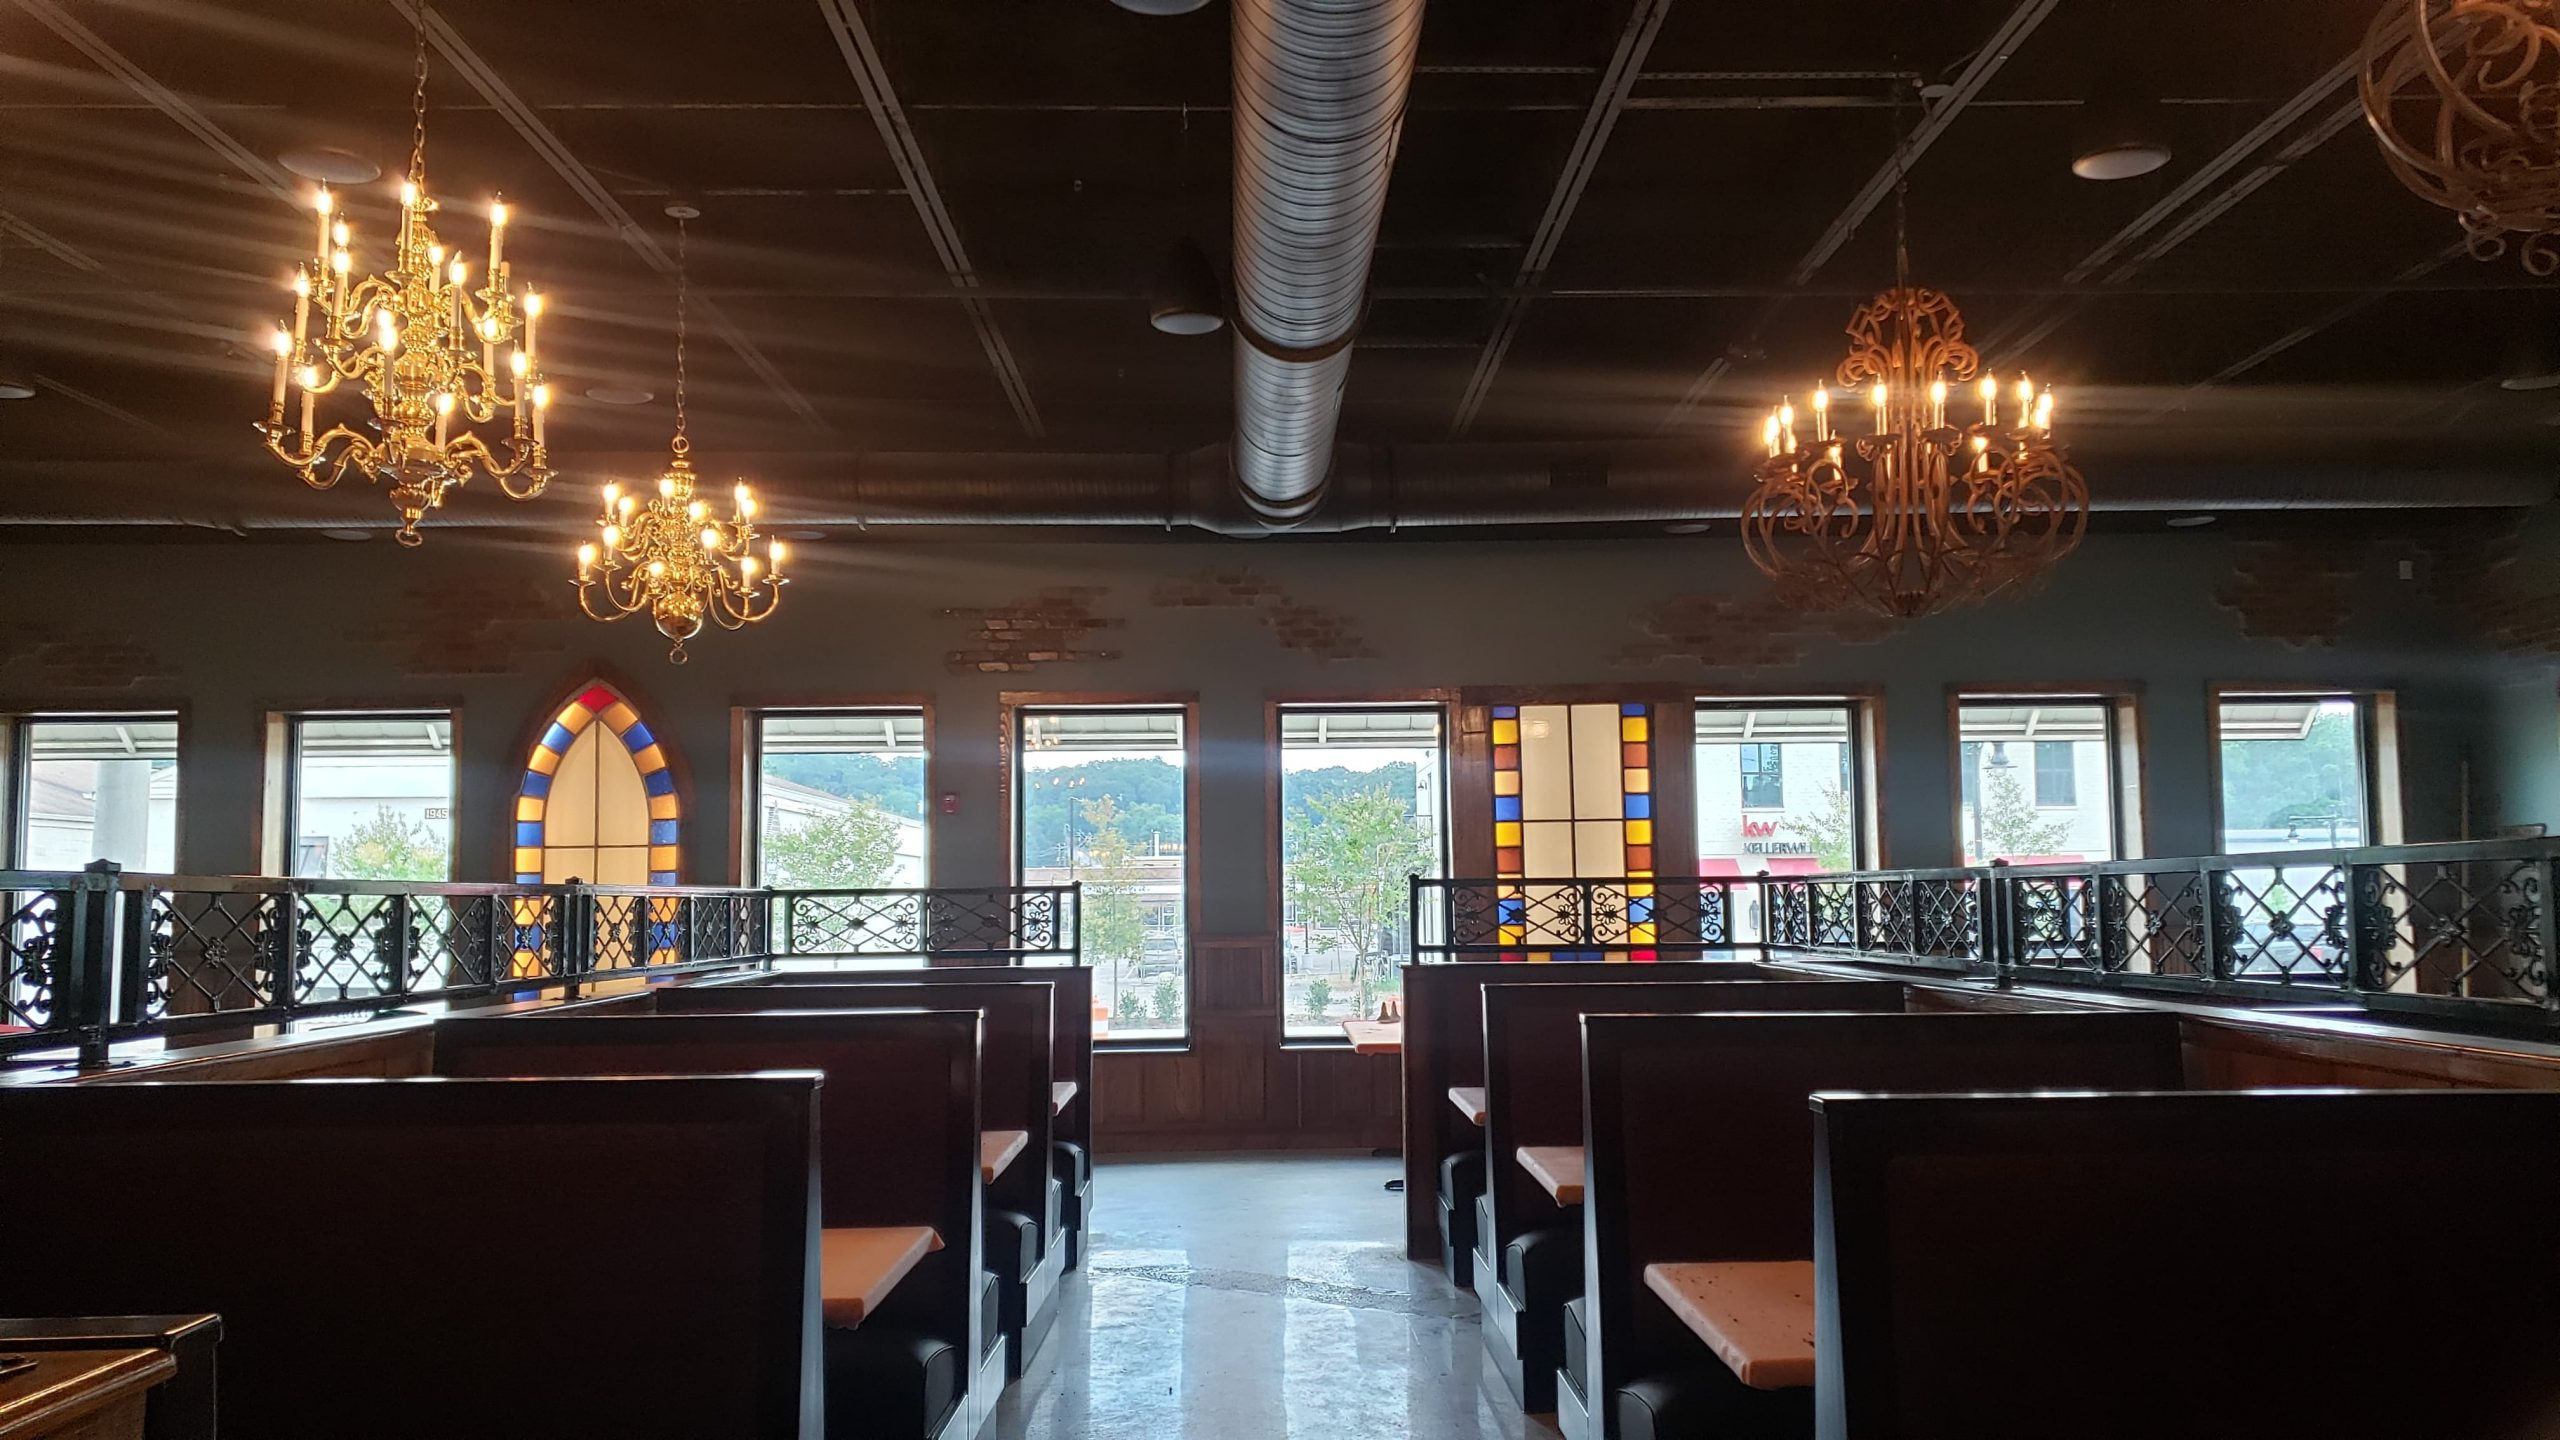 A look at the menu: Half Shell Oyster House coming soon to Trussville